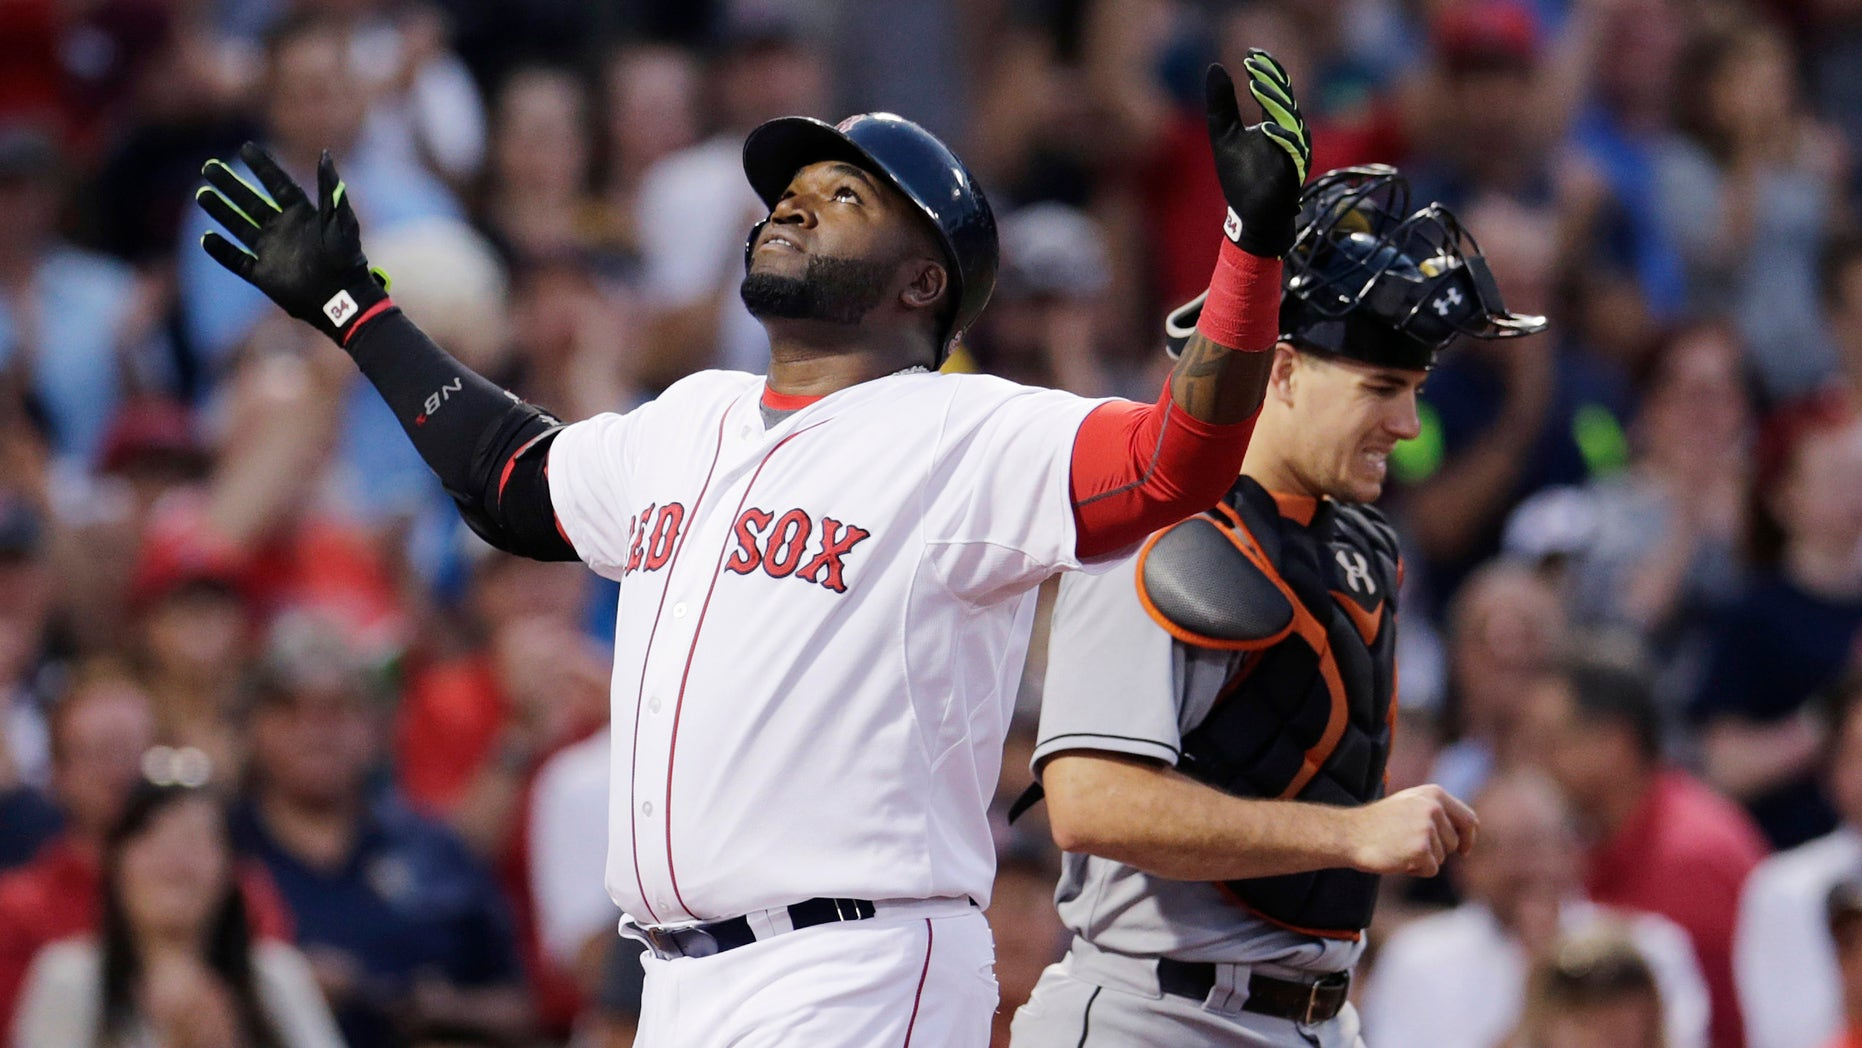 Boston Red Sox's David Ortiz reacts as he crosses home plate after his two-run home run during the third inning a baseball game at Fenway Park, Wednesday July 8, 2015, in Boston. At right is Miami Marlins catcher J.T. Realmuto. (AP Photo/Charles Krupa)